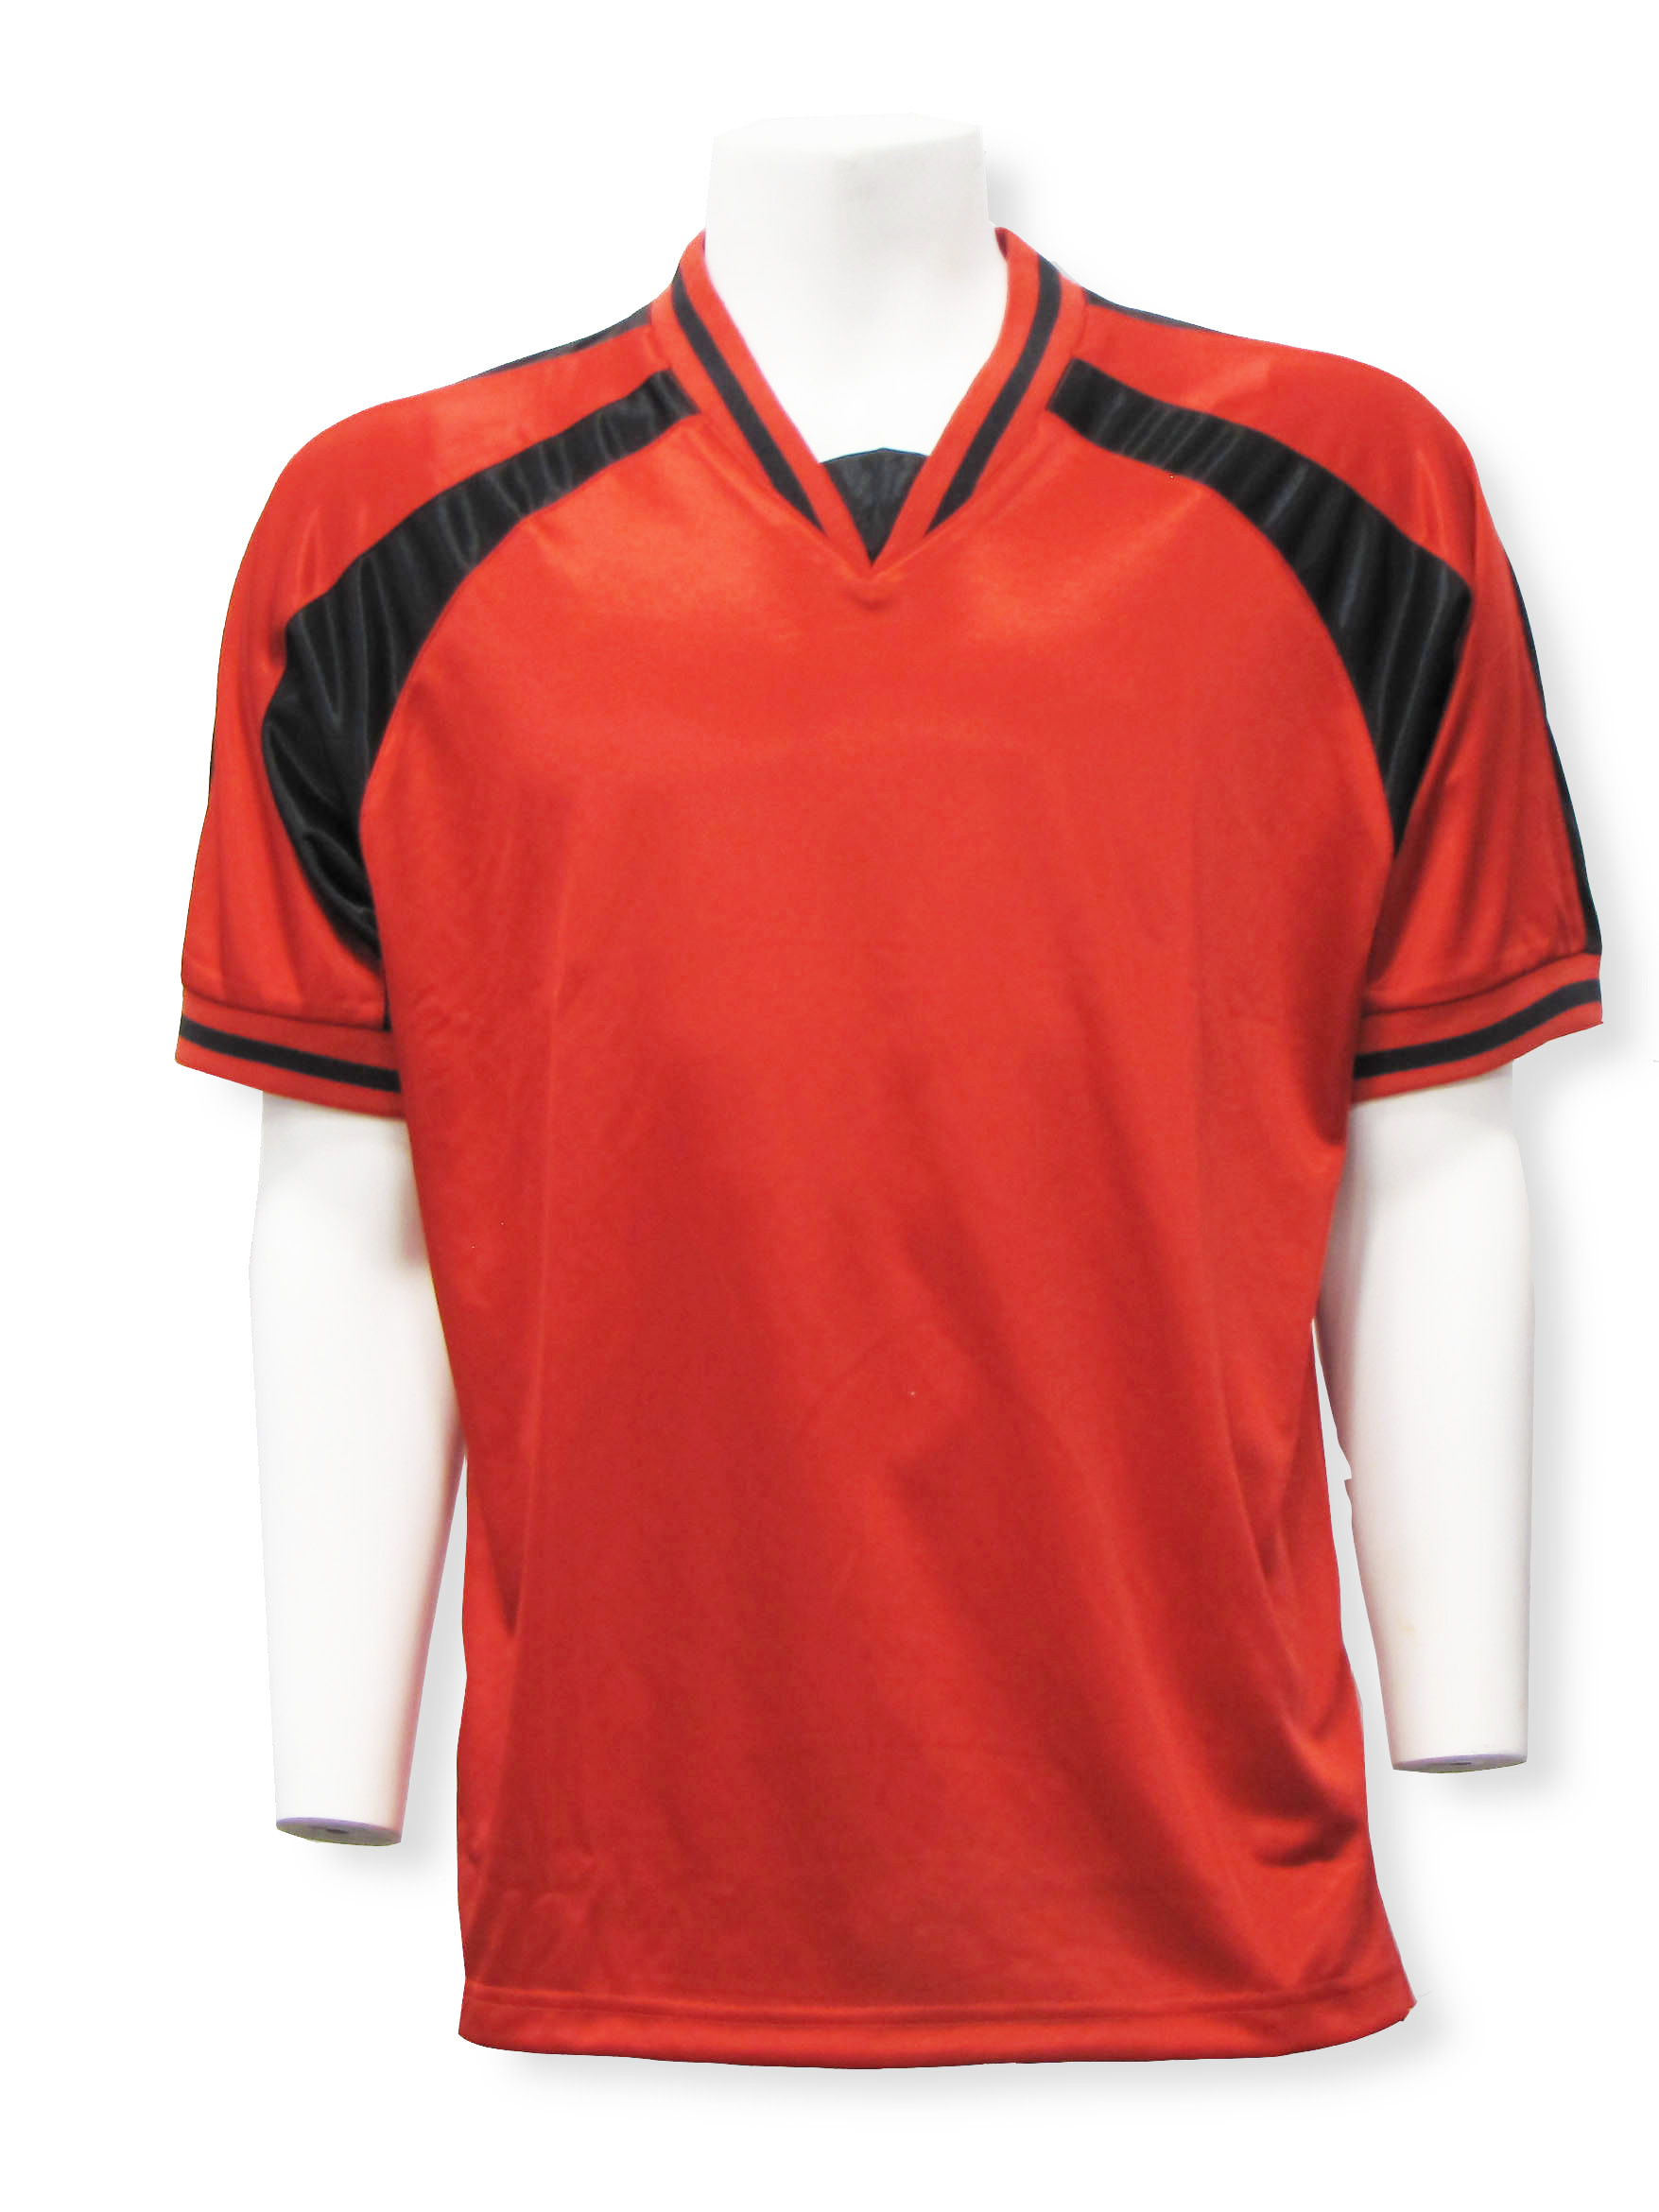 Spitfire soccer jersey in red/black by Code Four Athletics